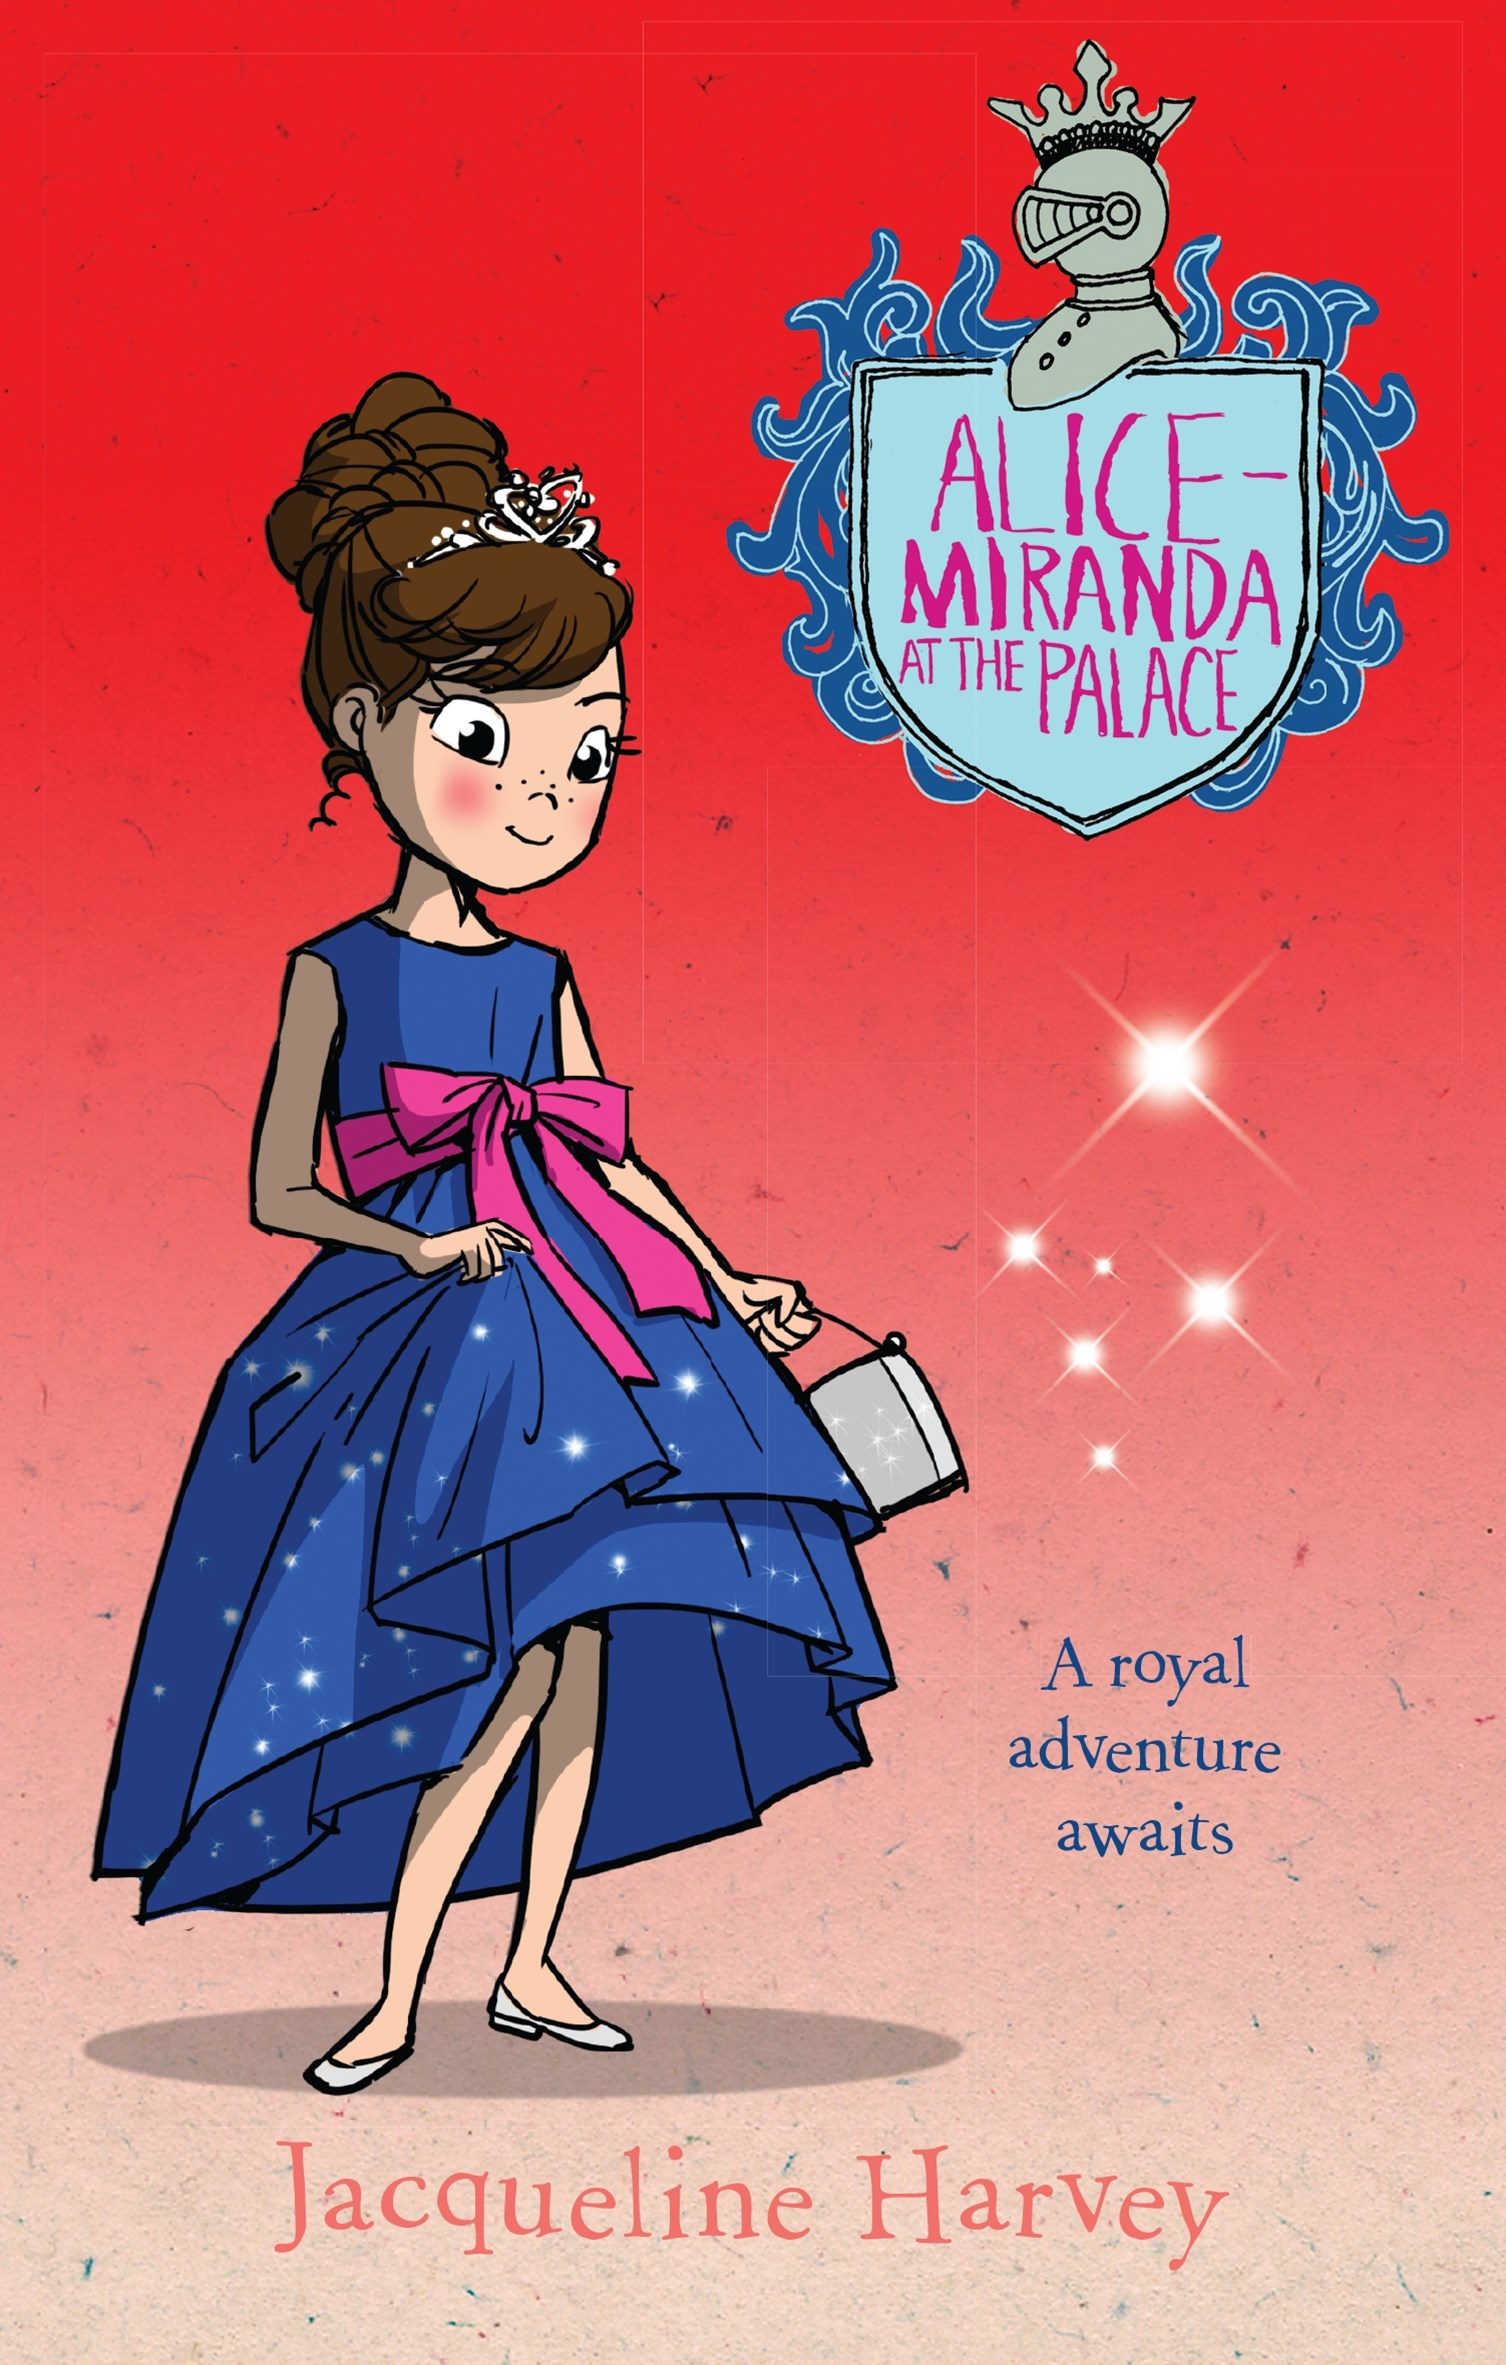 Alice-Miranda at the Palace (Alice-Miranda Book 11)